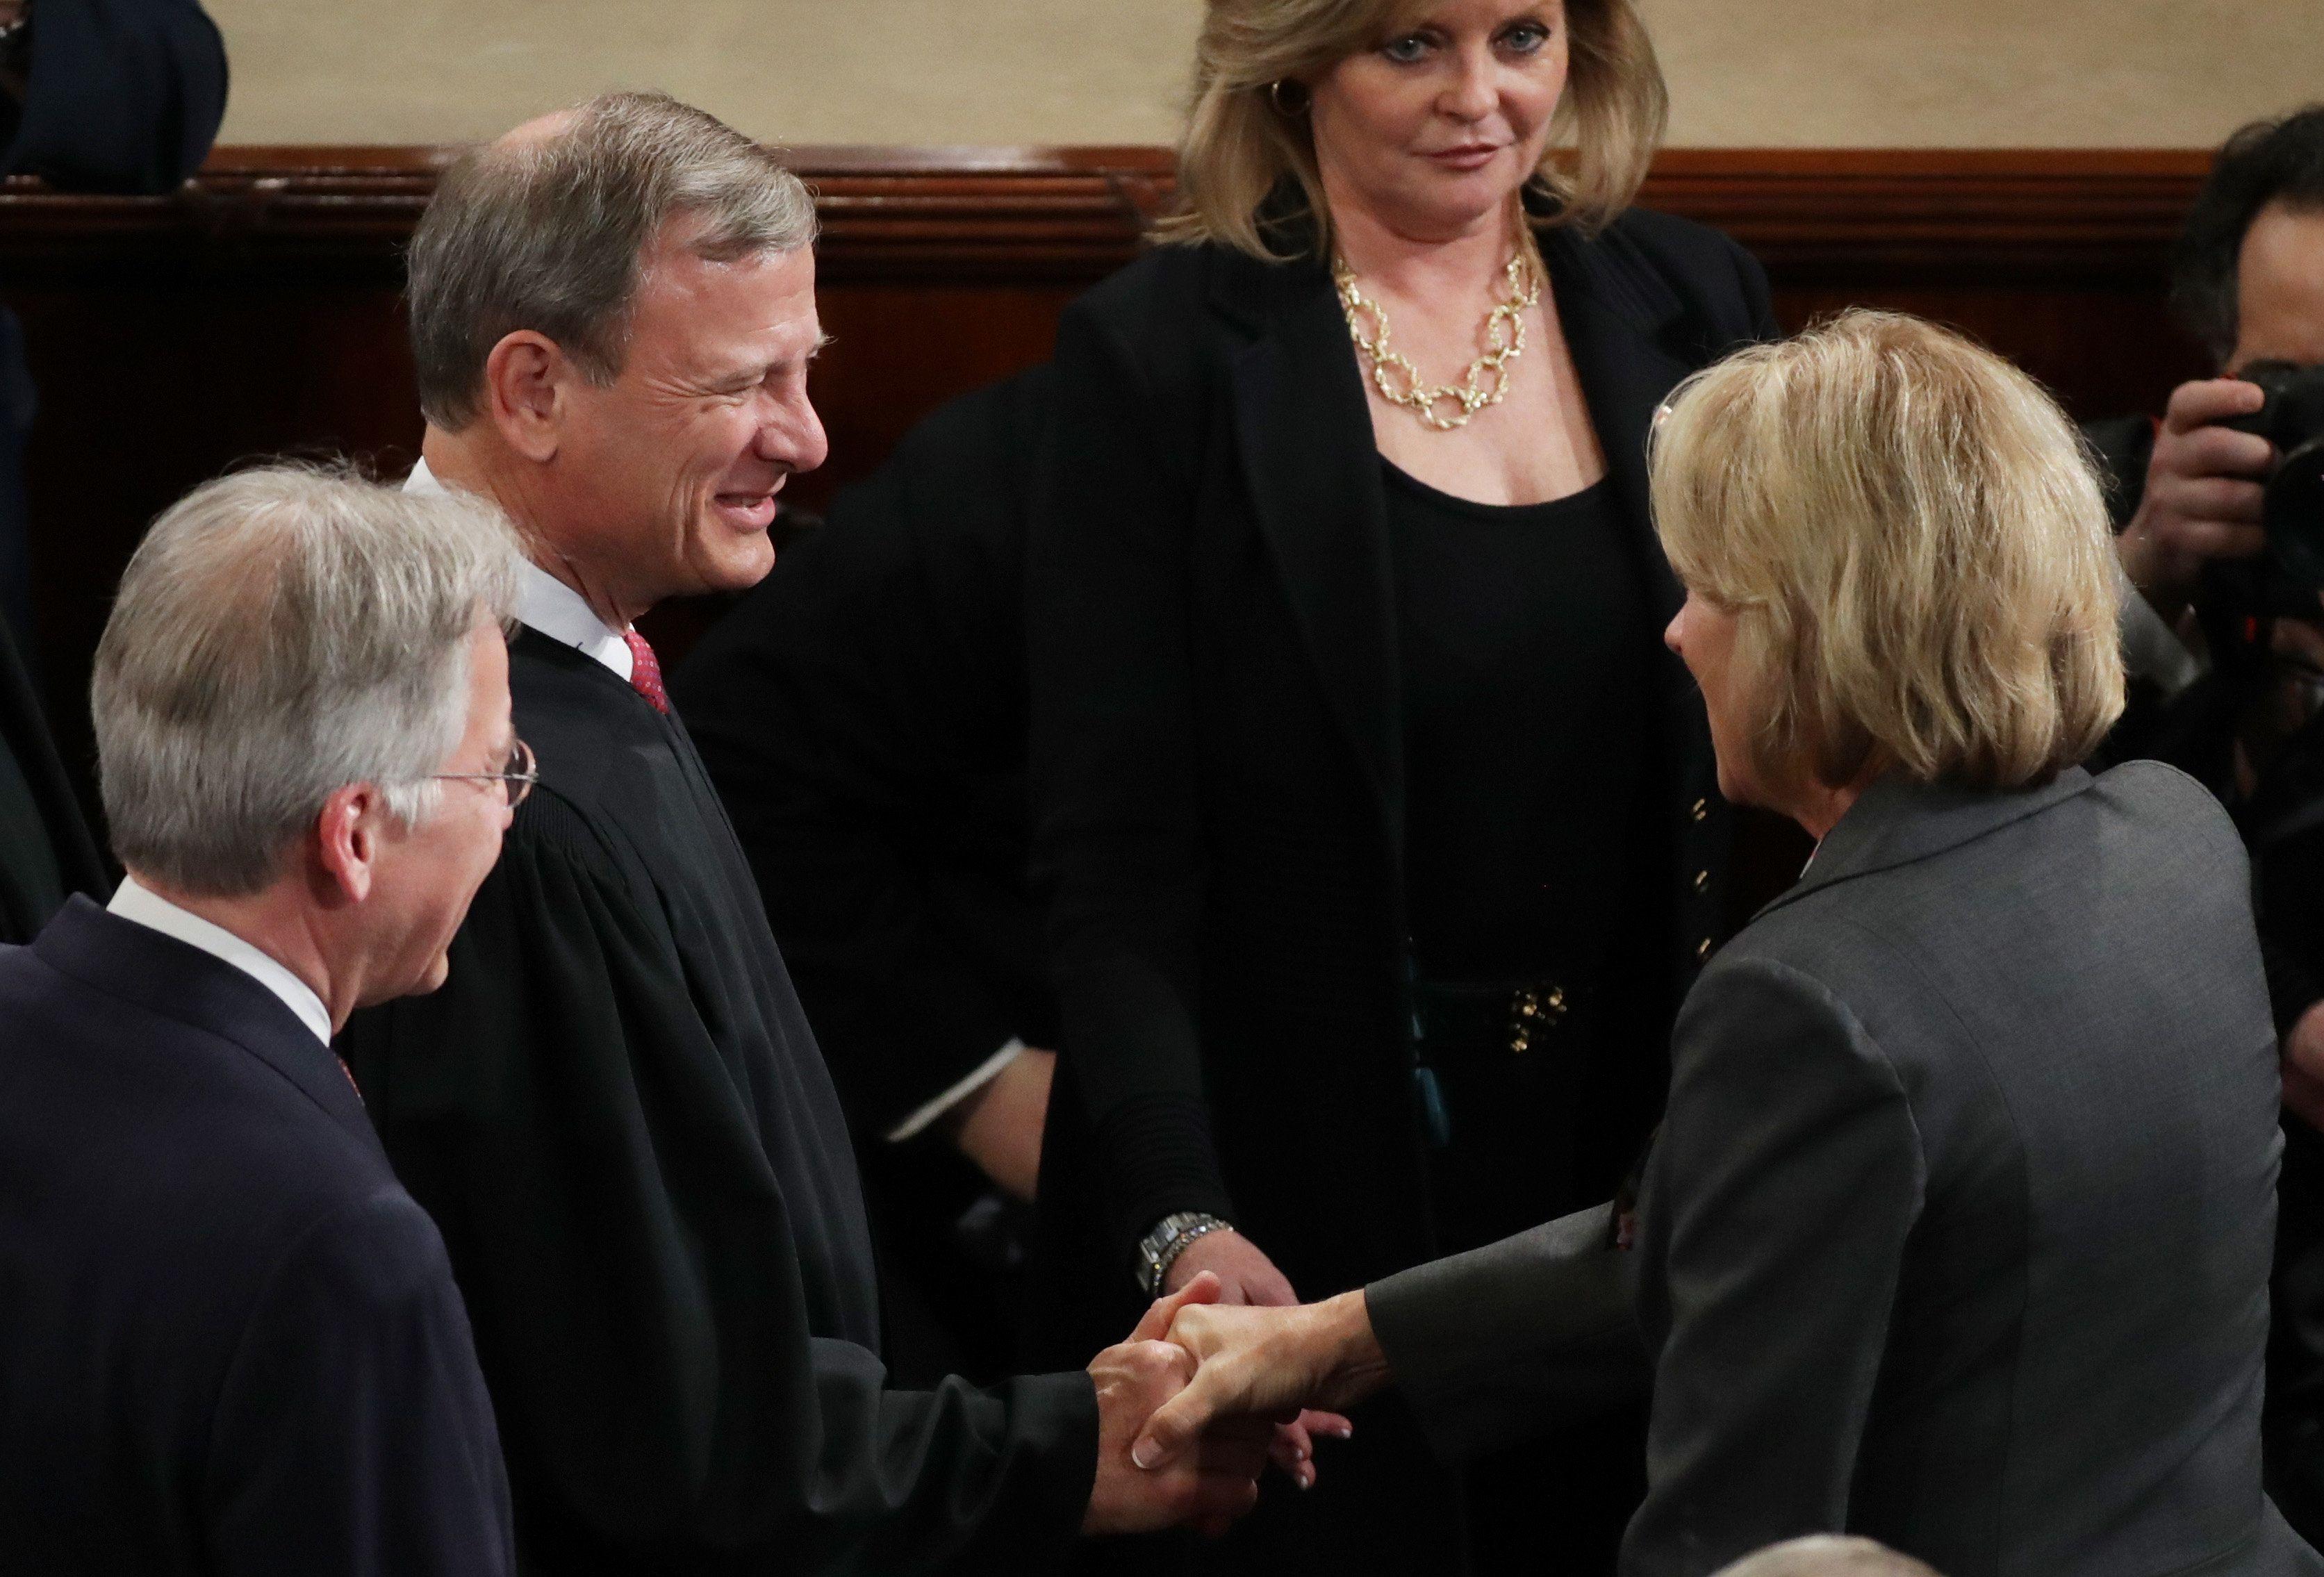 Supreme Court Chief Justice John Roberts shakes hands with Education Secretary Betsy DeVos as they arrive to President T